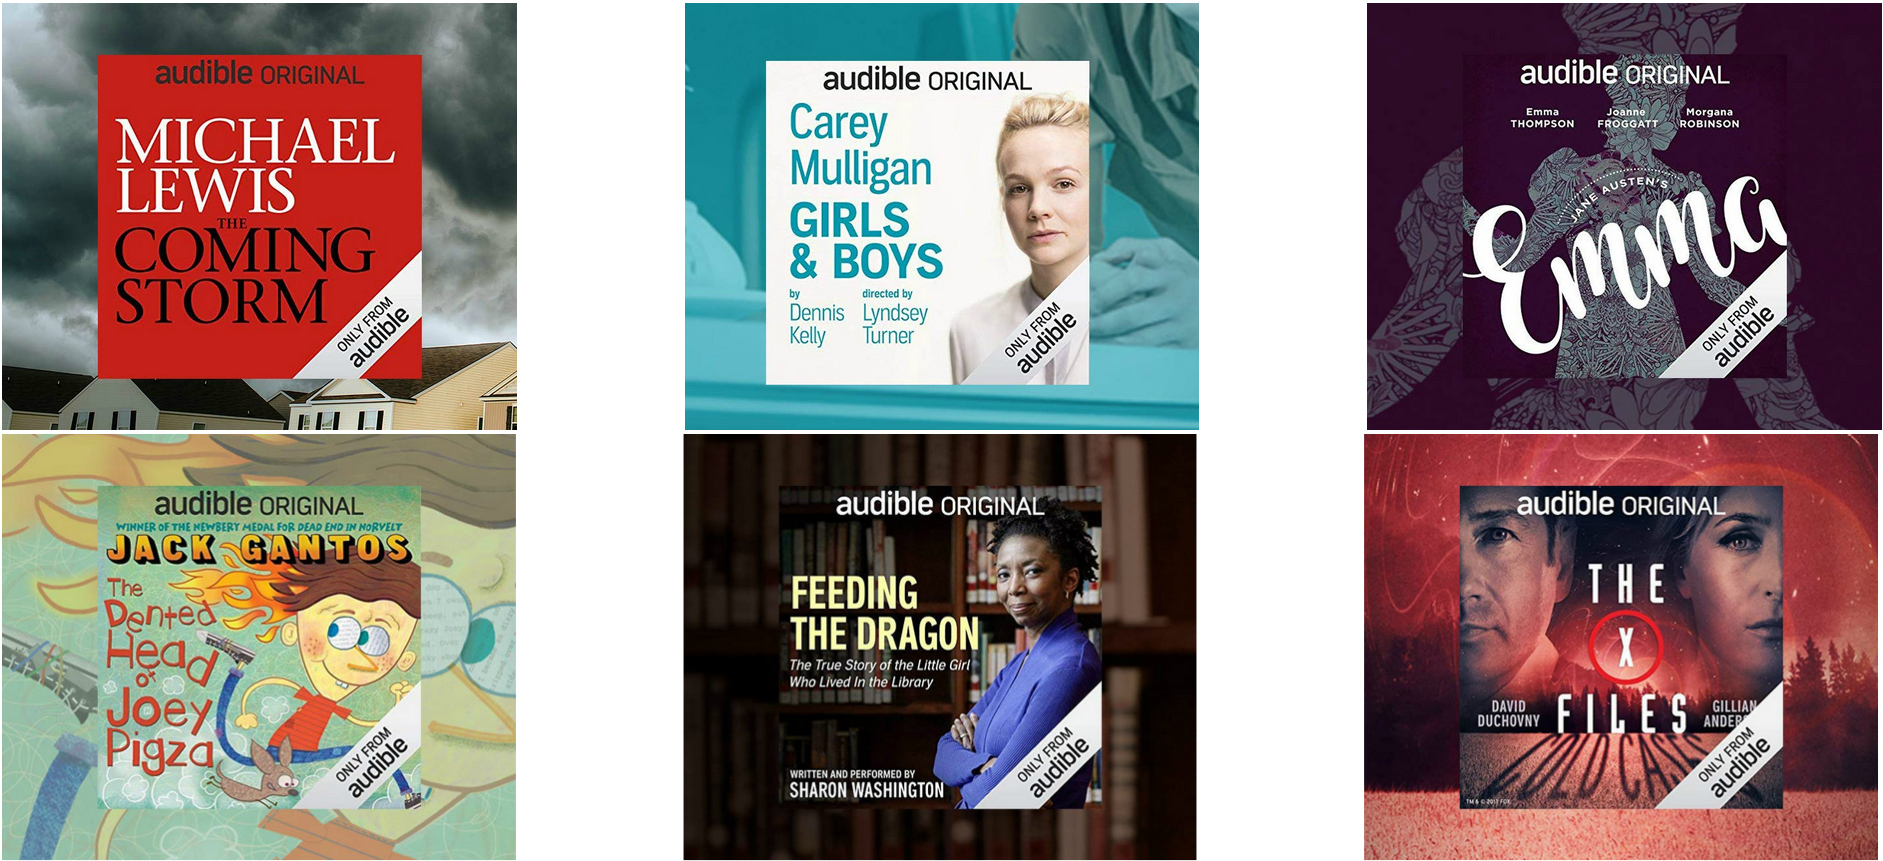 Free Audible 30-Day Trial Now Includes 4 FREE Audiobooks & Audio